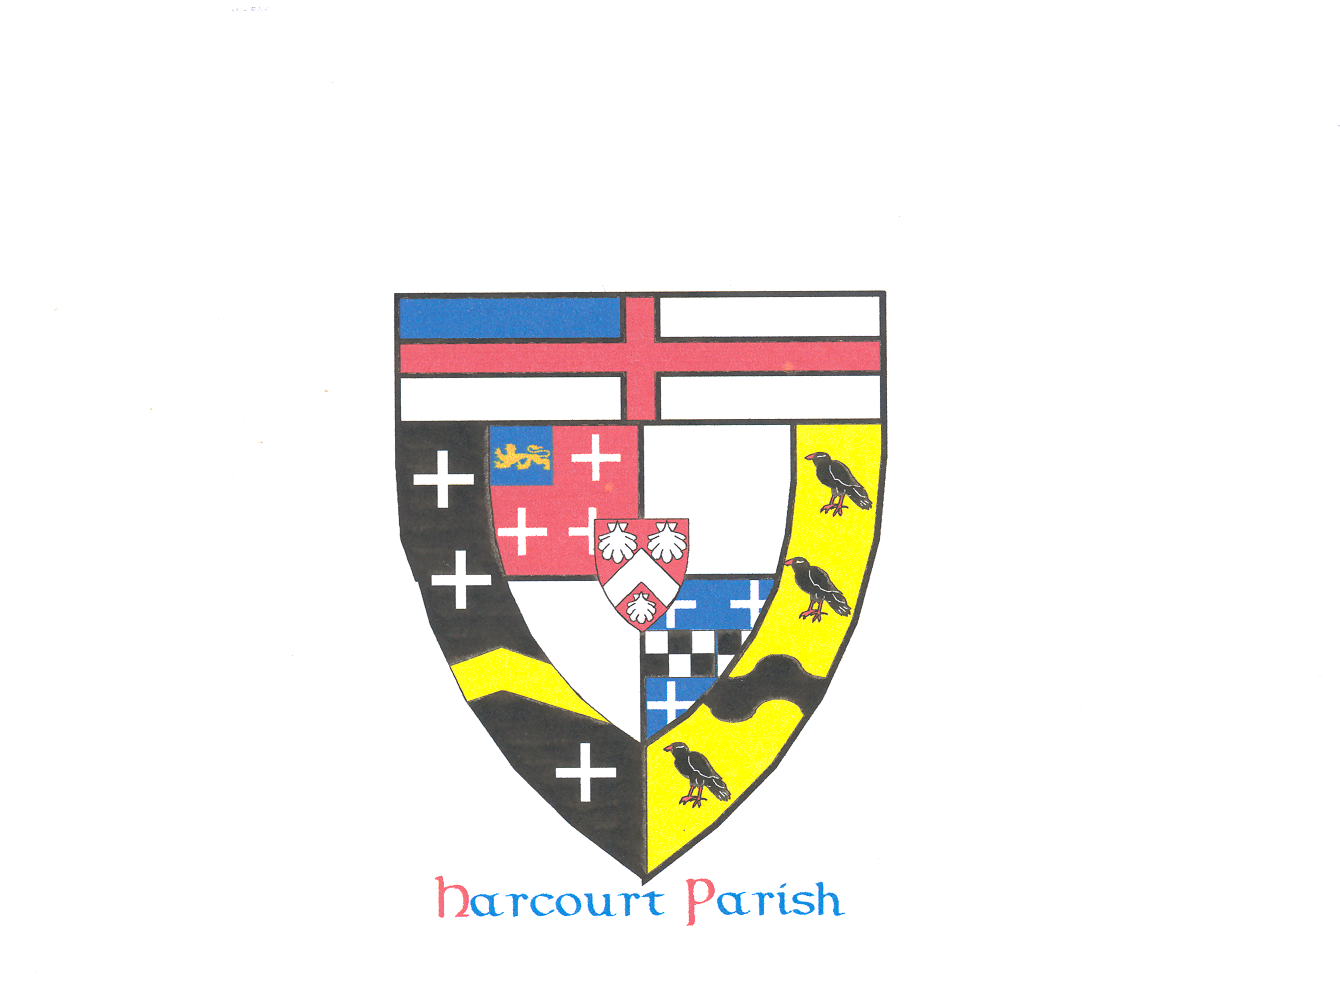 Harcourt Parish